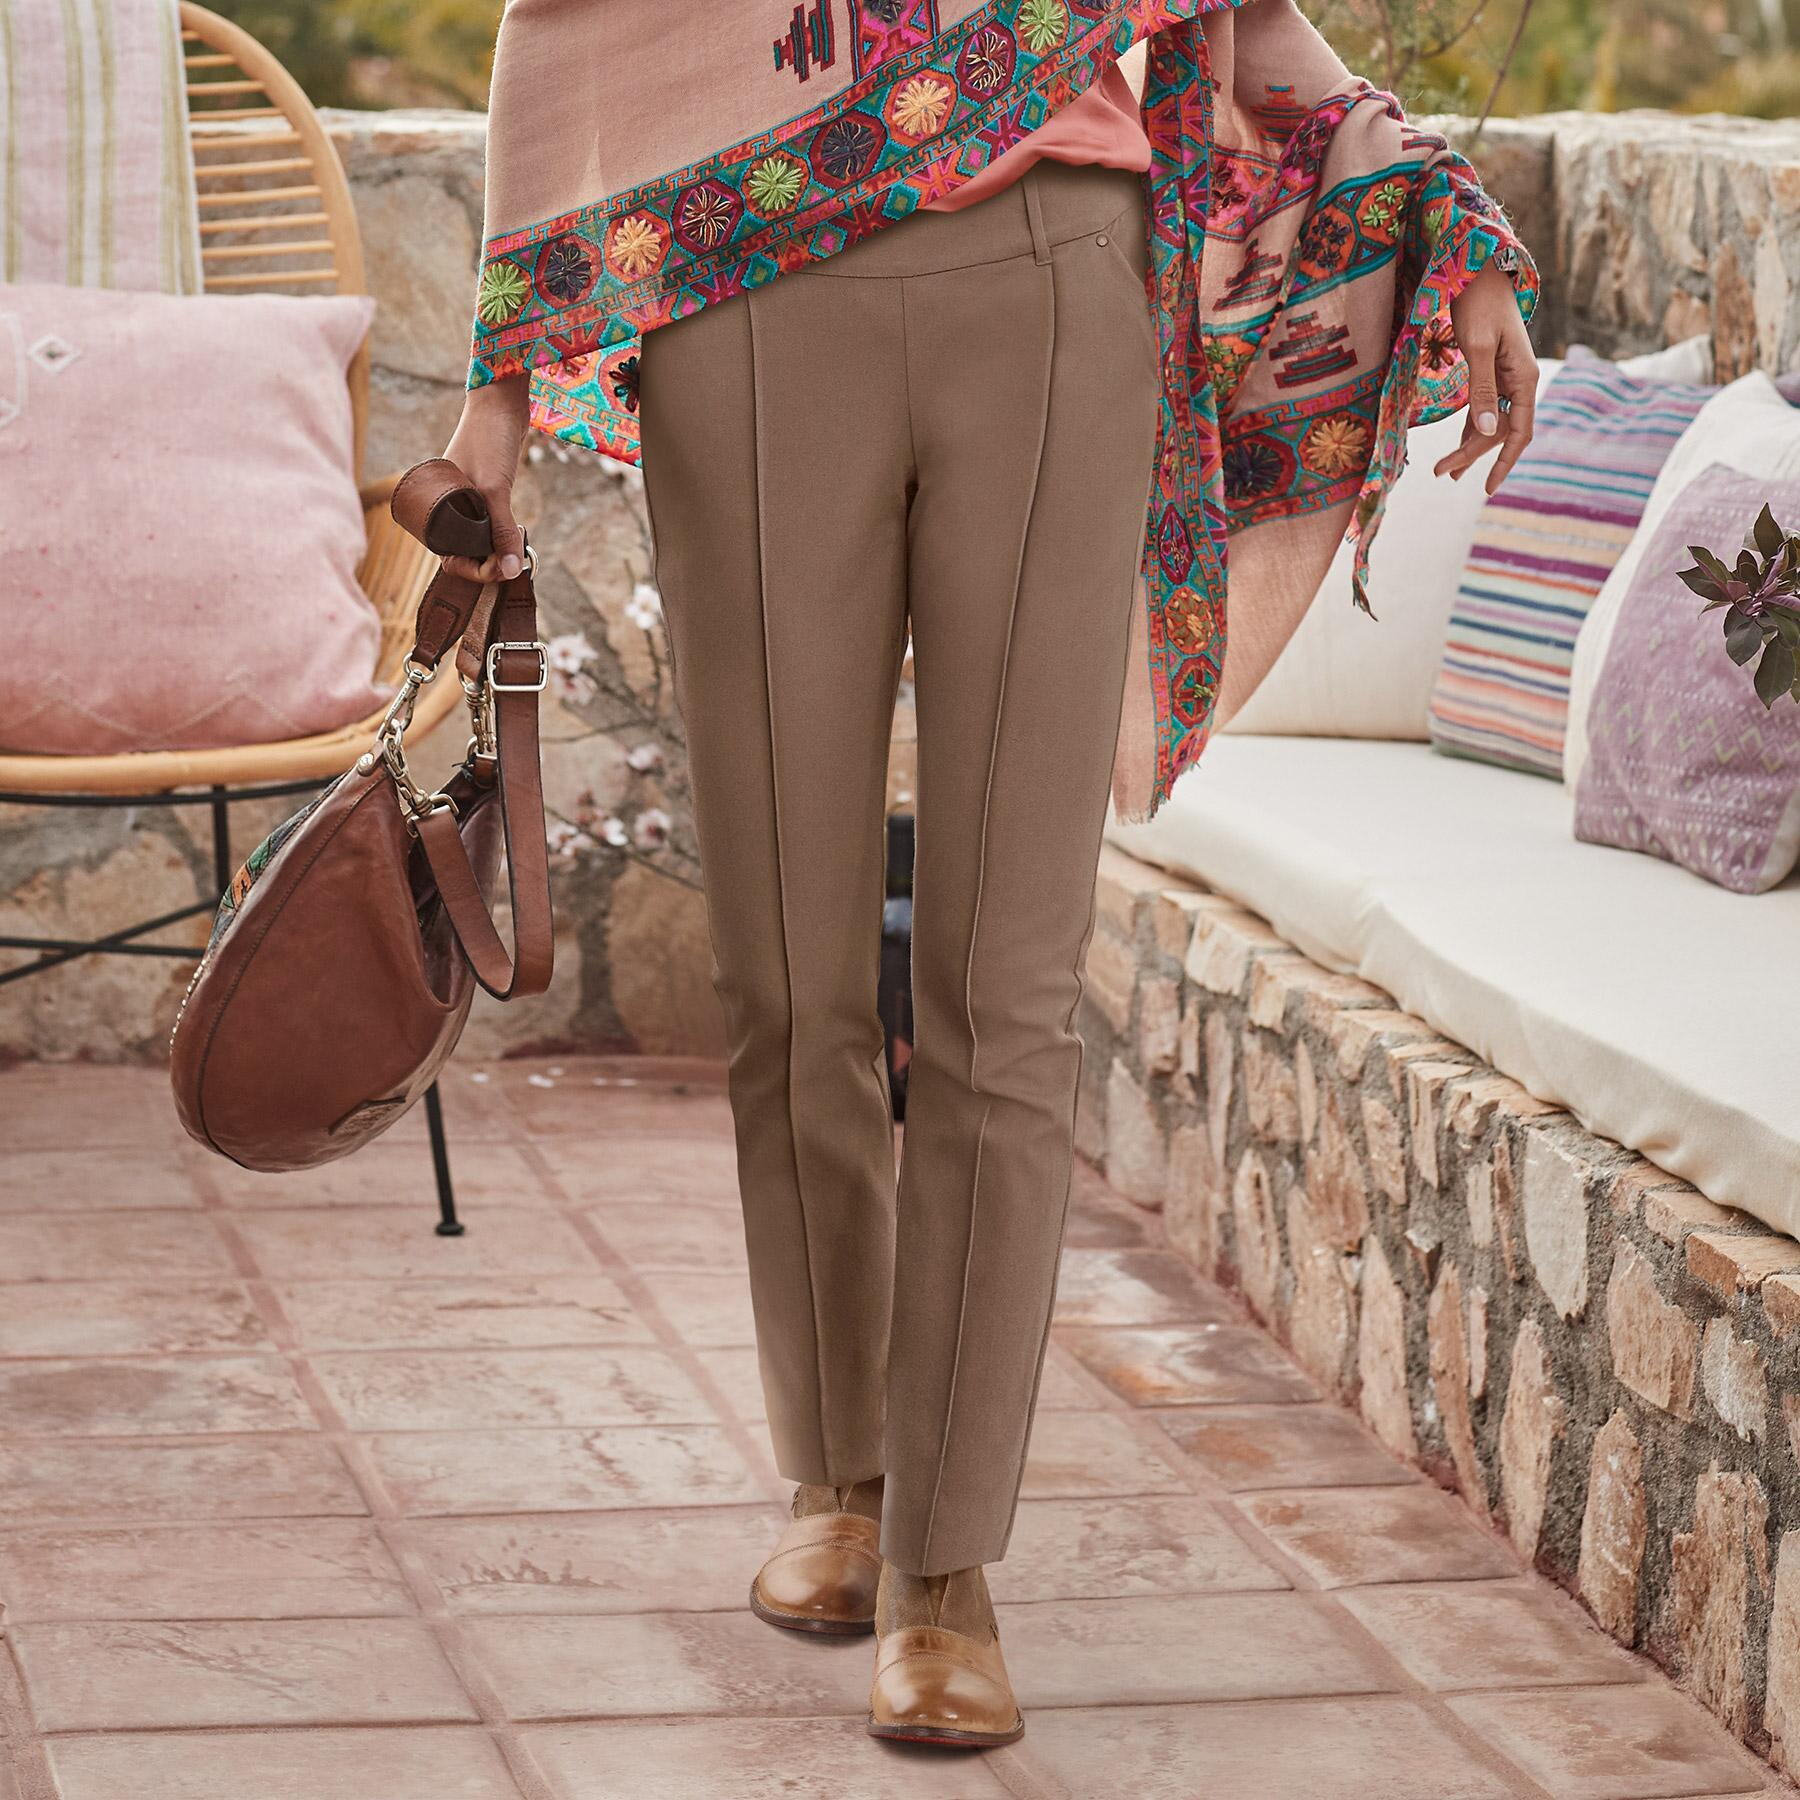 THE MOST FABULOUS PANTS: View 1